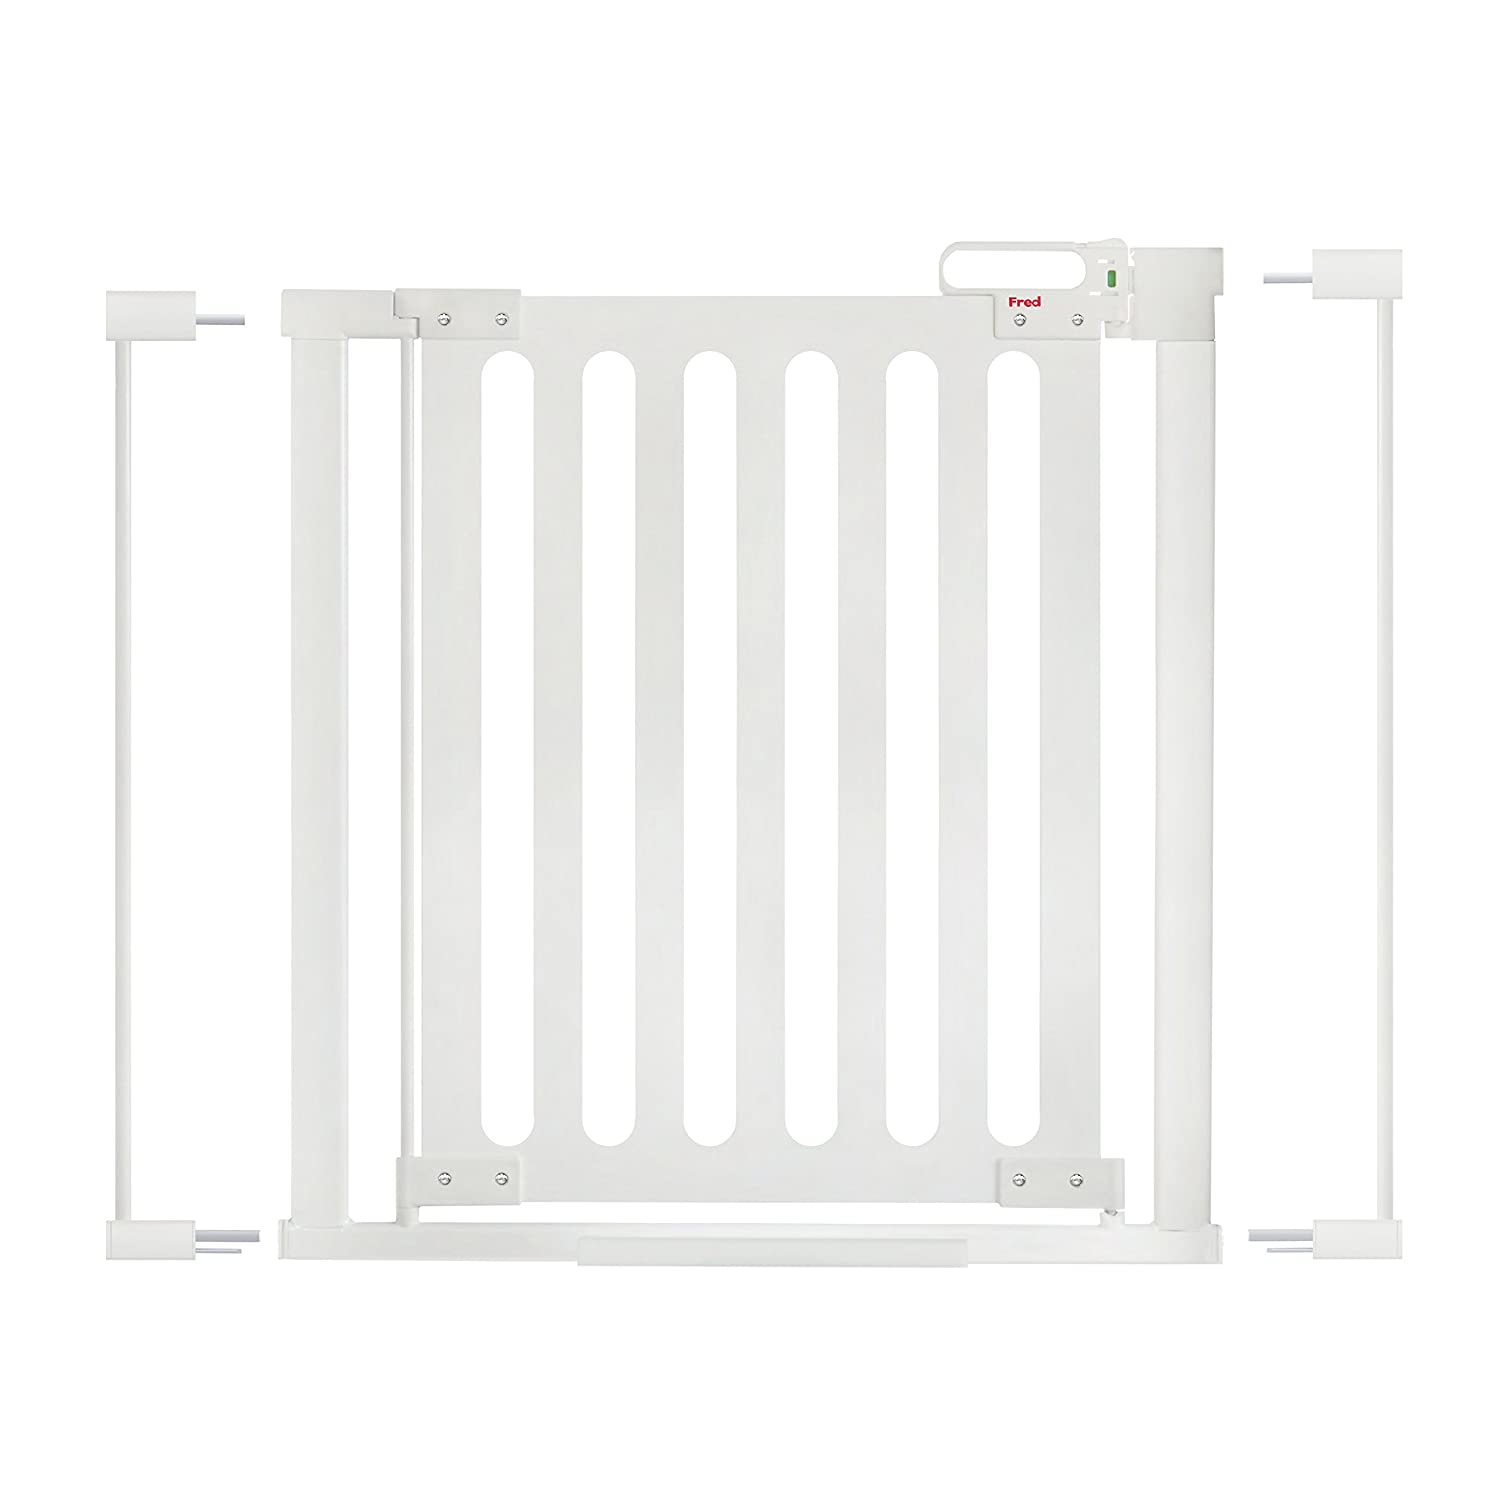 Dark Grey Extend Pressure Gate to Fit Openings up to 124.5cm/… Fred Safety Pressure Gate Extension Kit